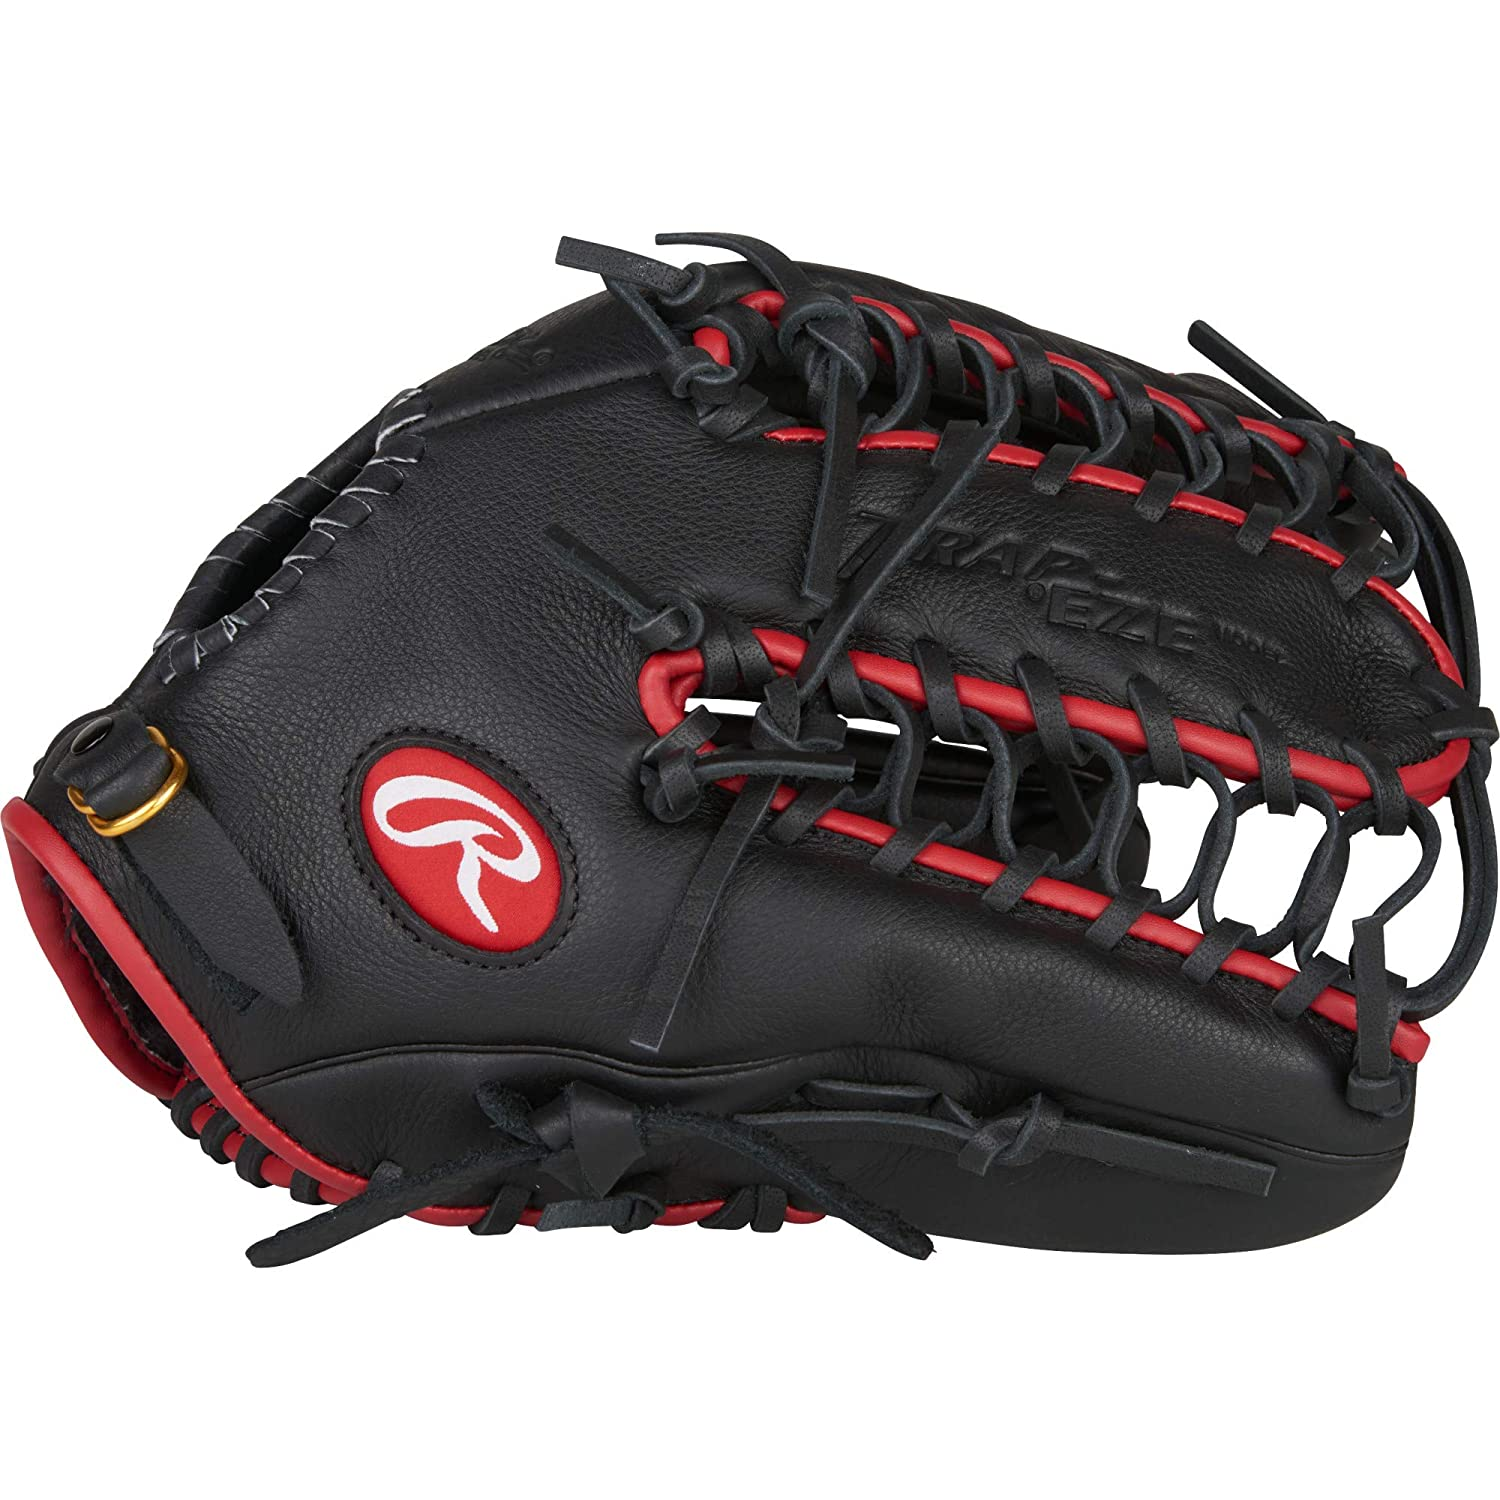 Rawlings Select Pro Lite trota 31,1  cm SPL1225MT Youth baseball guanto, SPL1225MT-6/0, Nero, 12.25' 1 cm SPL1225MT Youth baseball guanto 12.25 Greys Distribution